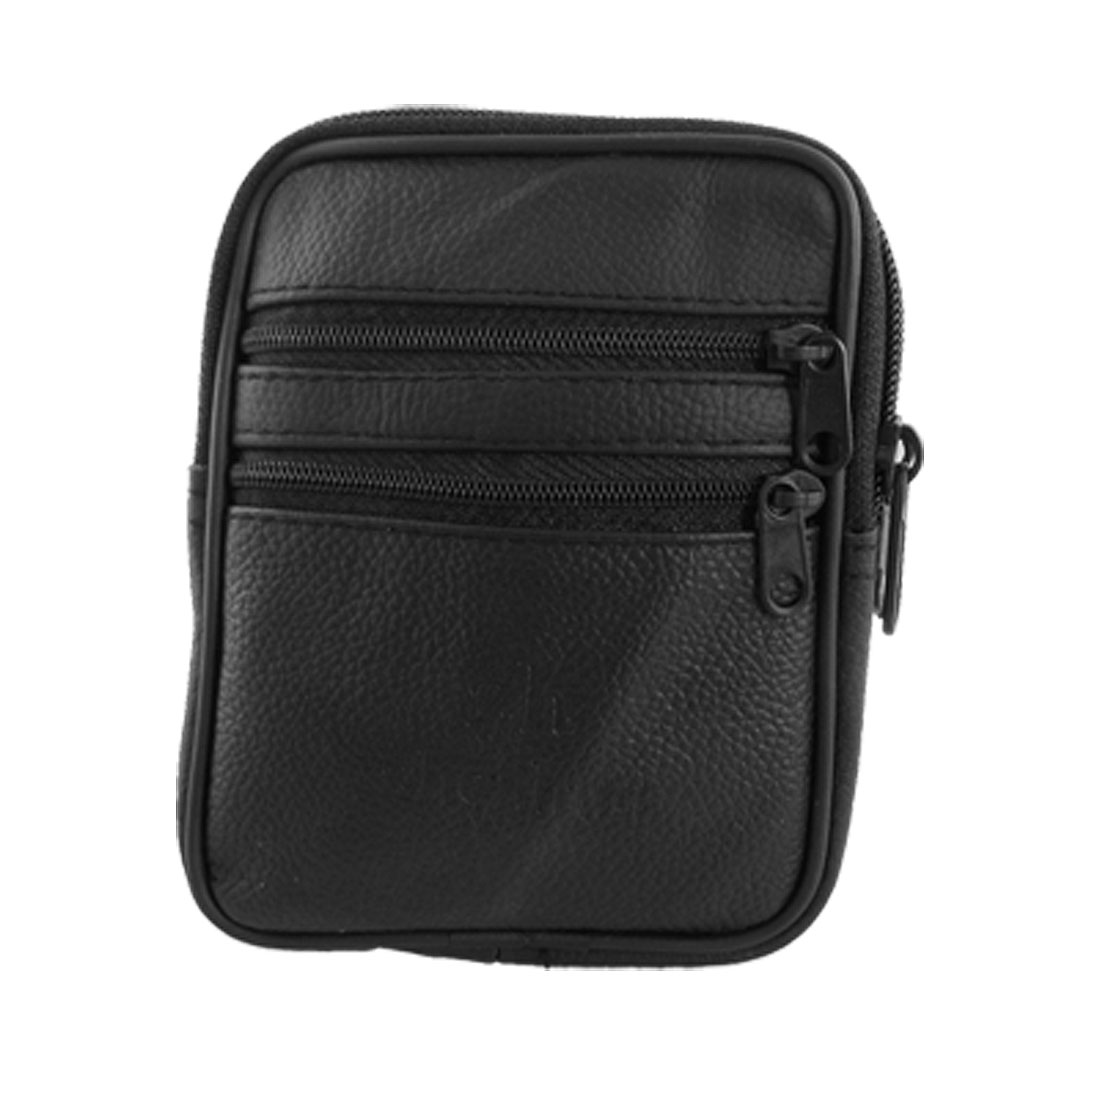 Multifuctional Soft Leather Waist Bag Case Pouch for Mobile Phone Digital Camera Products